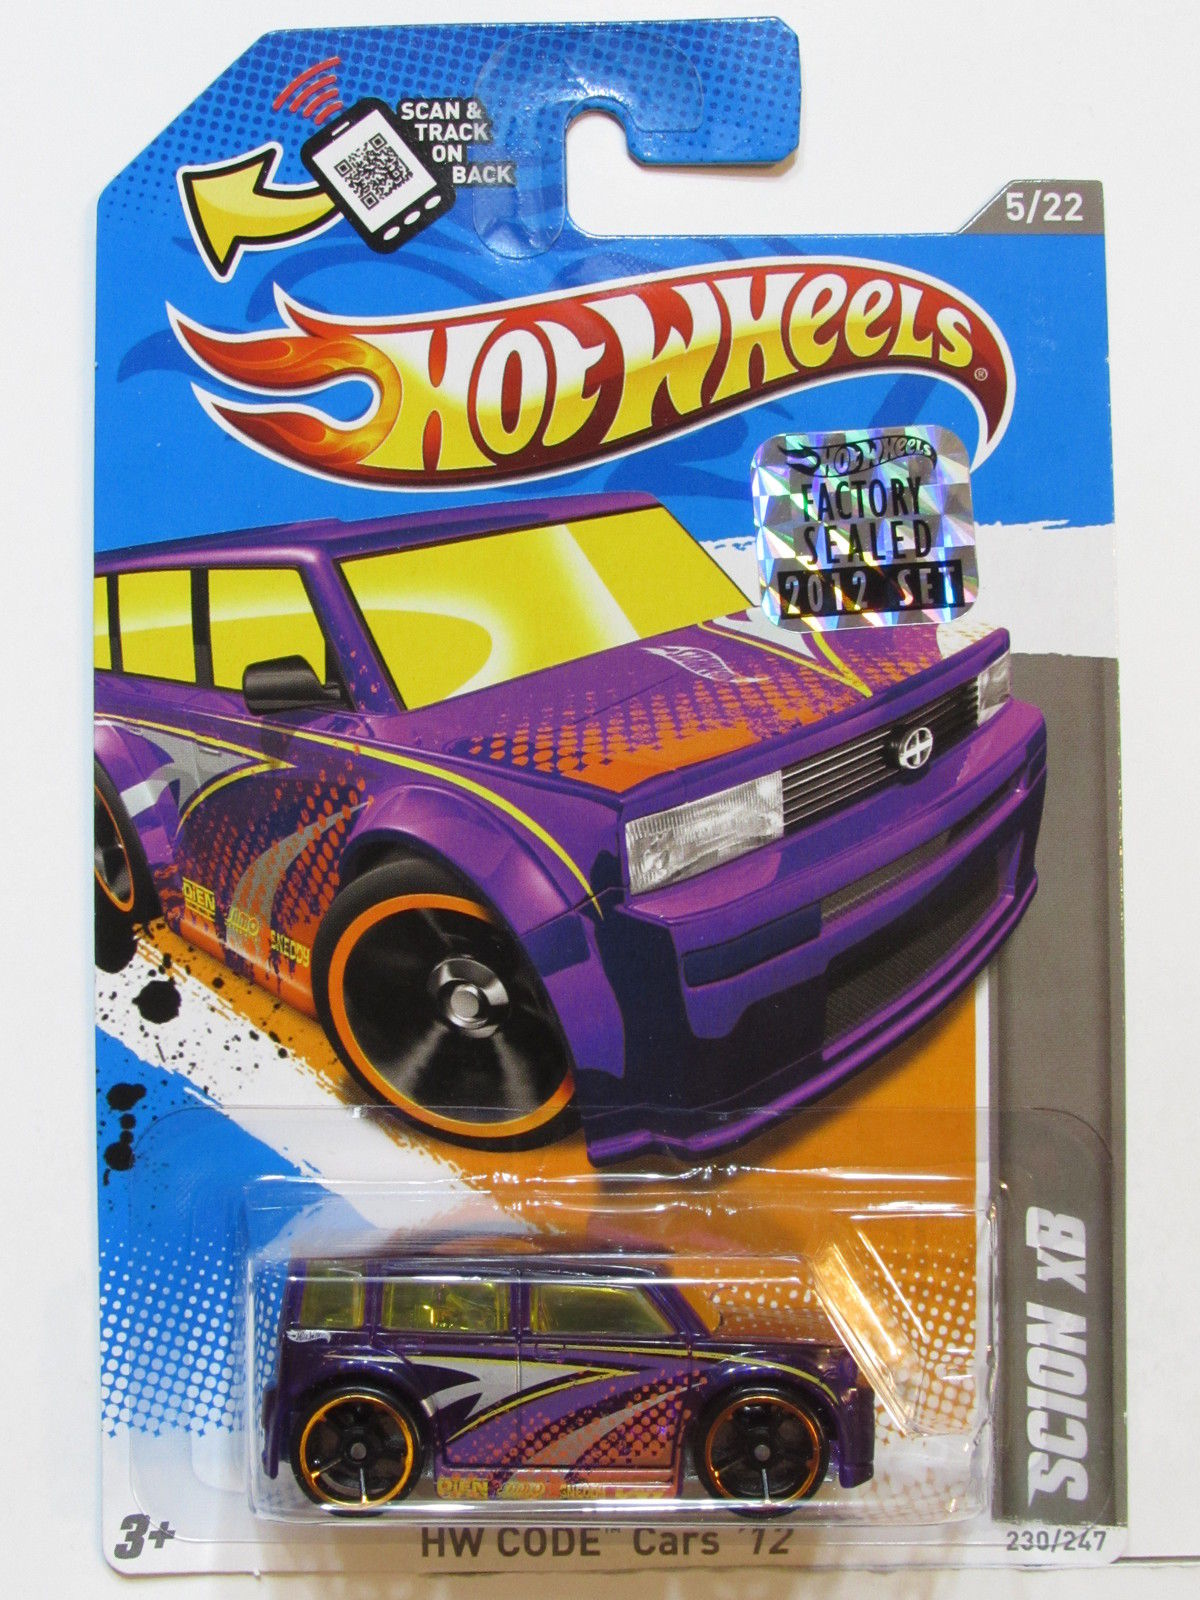 HOT WHEELS 2012 HW CODE CARS SCION XB FACTORY SEALED